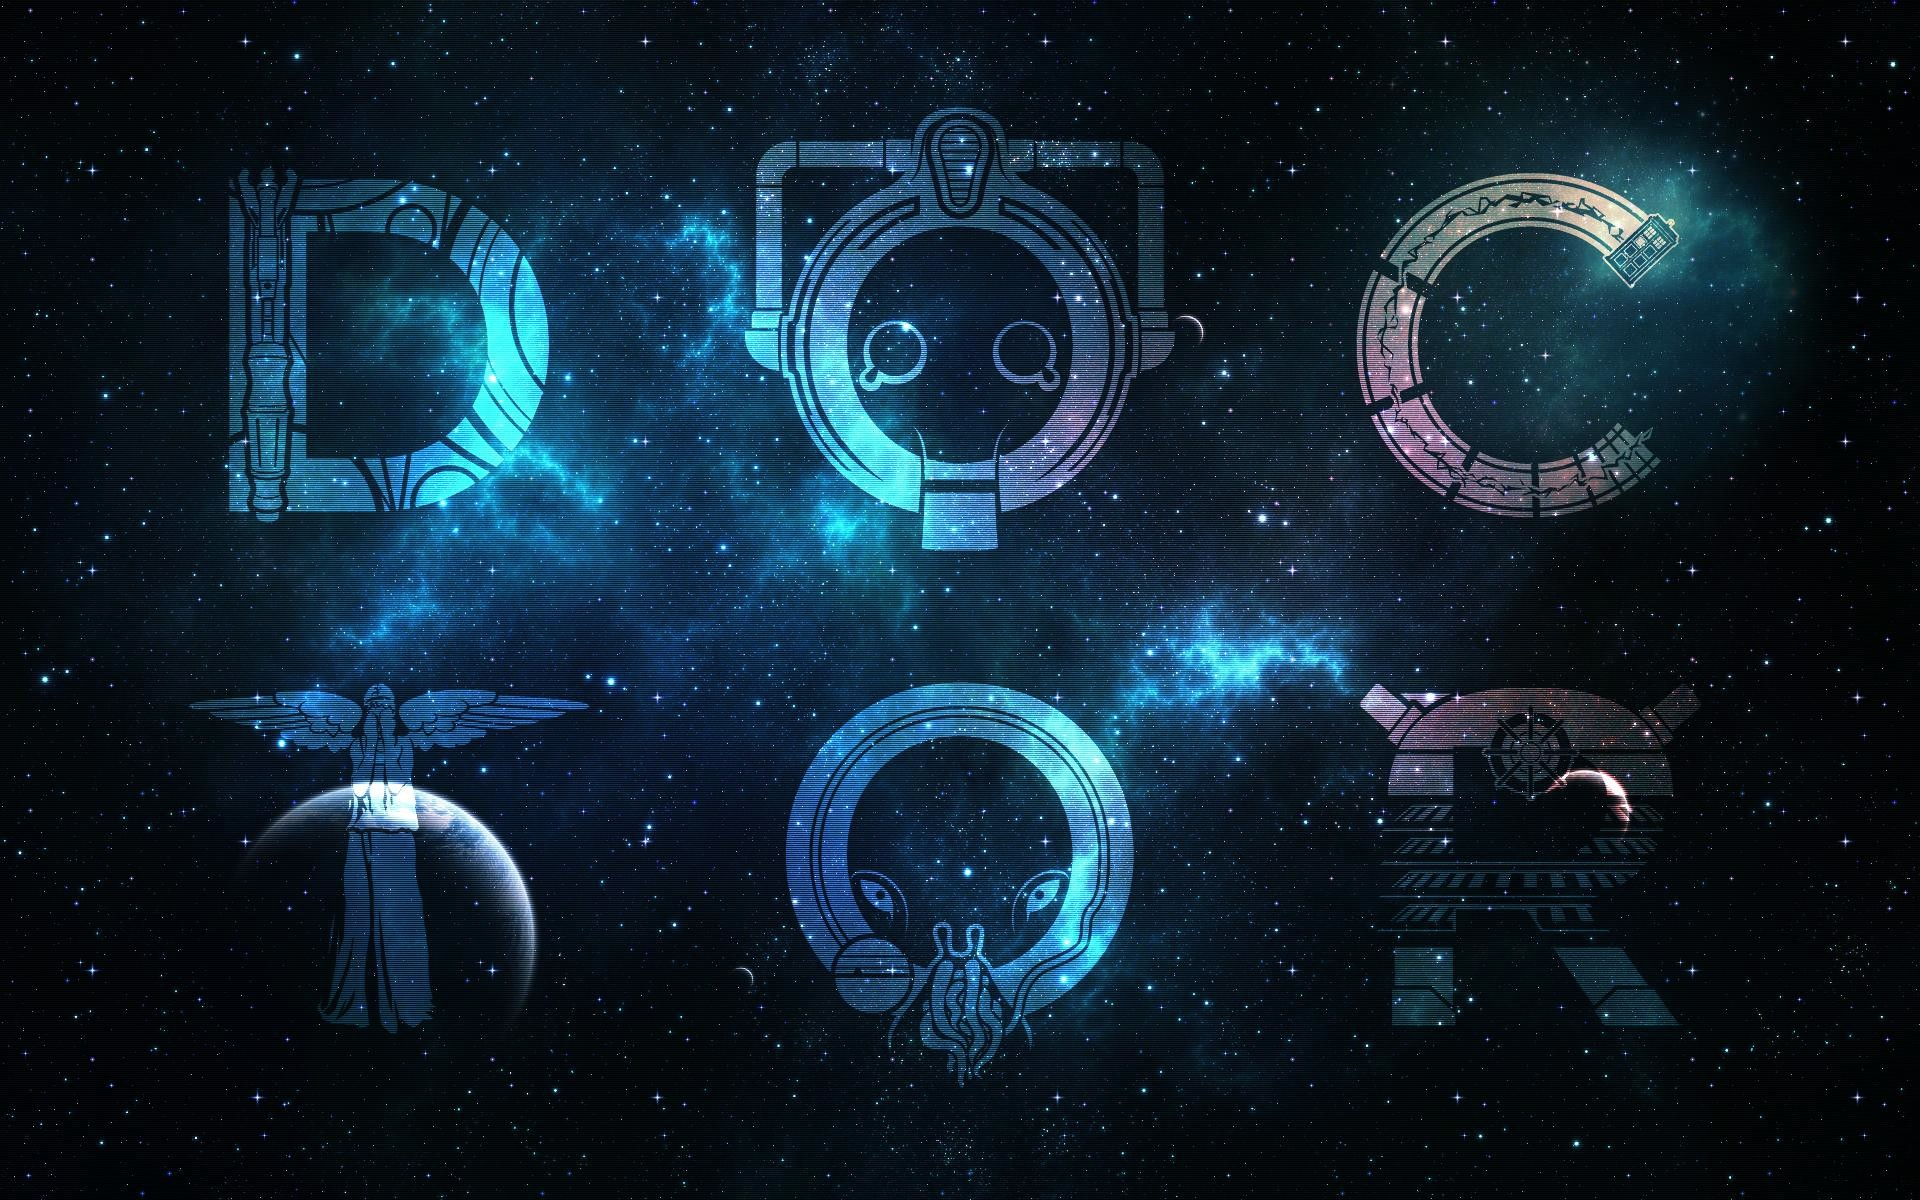 Fantastic Wallpaper Mac Doctor Who - 896272-popular-dr-who-tardis-wallpaper-1920x1200-for-mac  Pictures_129964.jpg